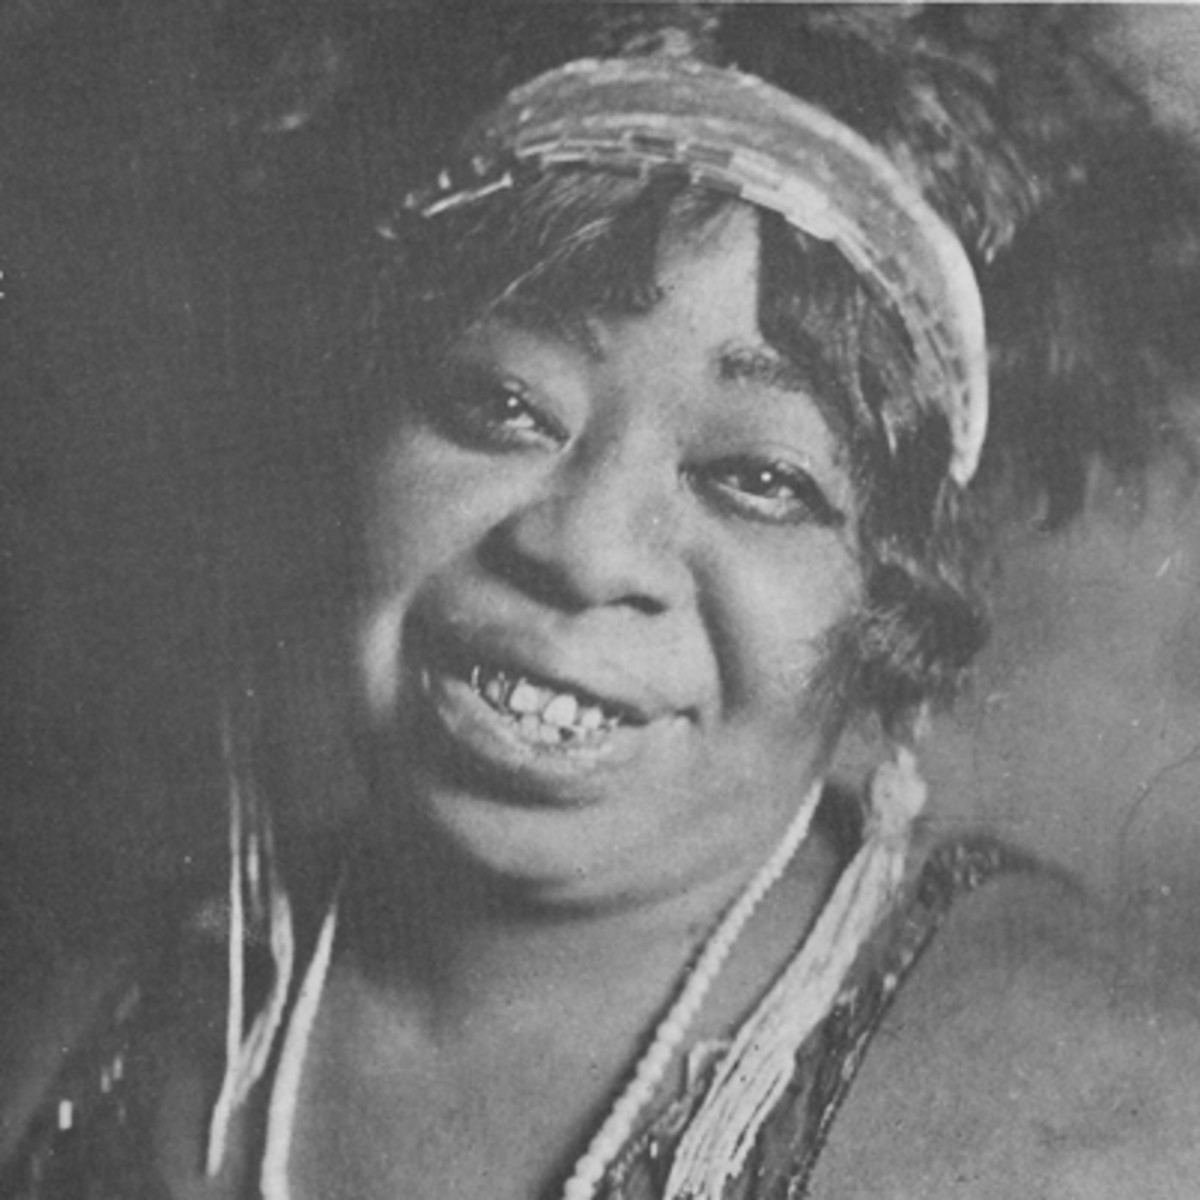 Ma Rainey - Songs, Movie & Facts - Biography